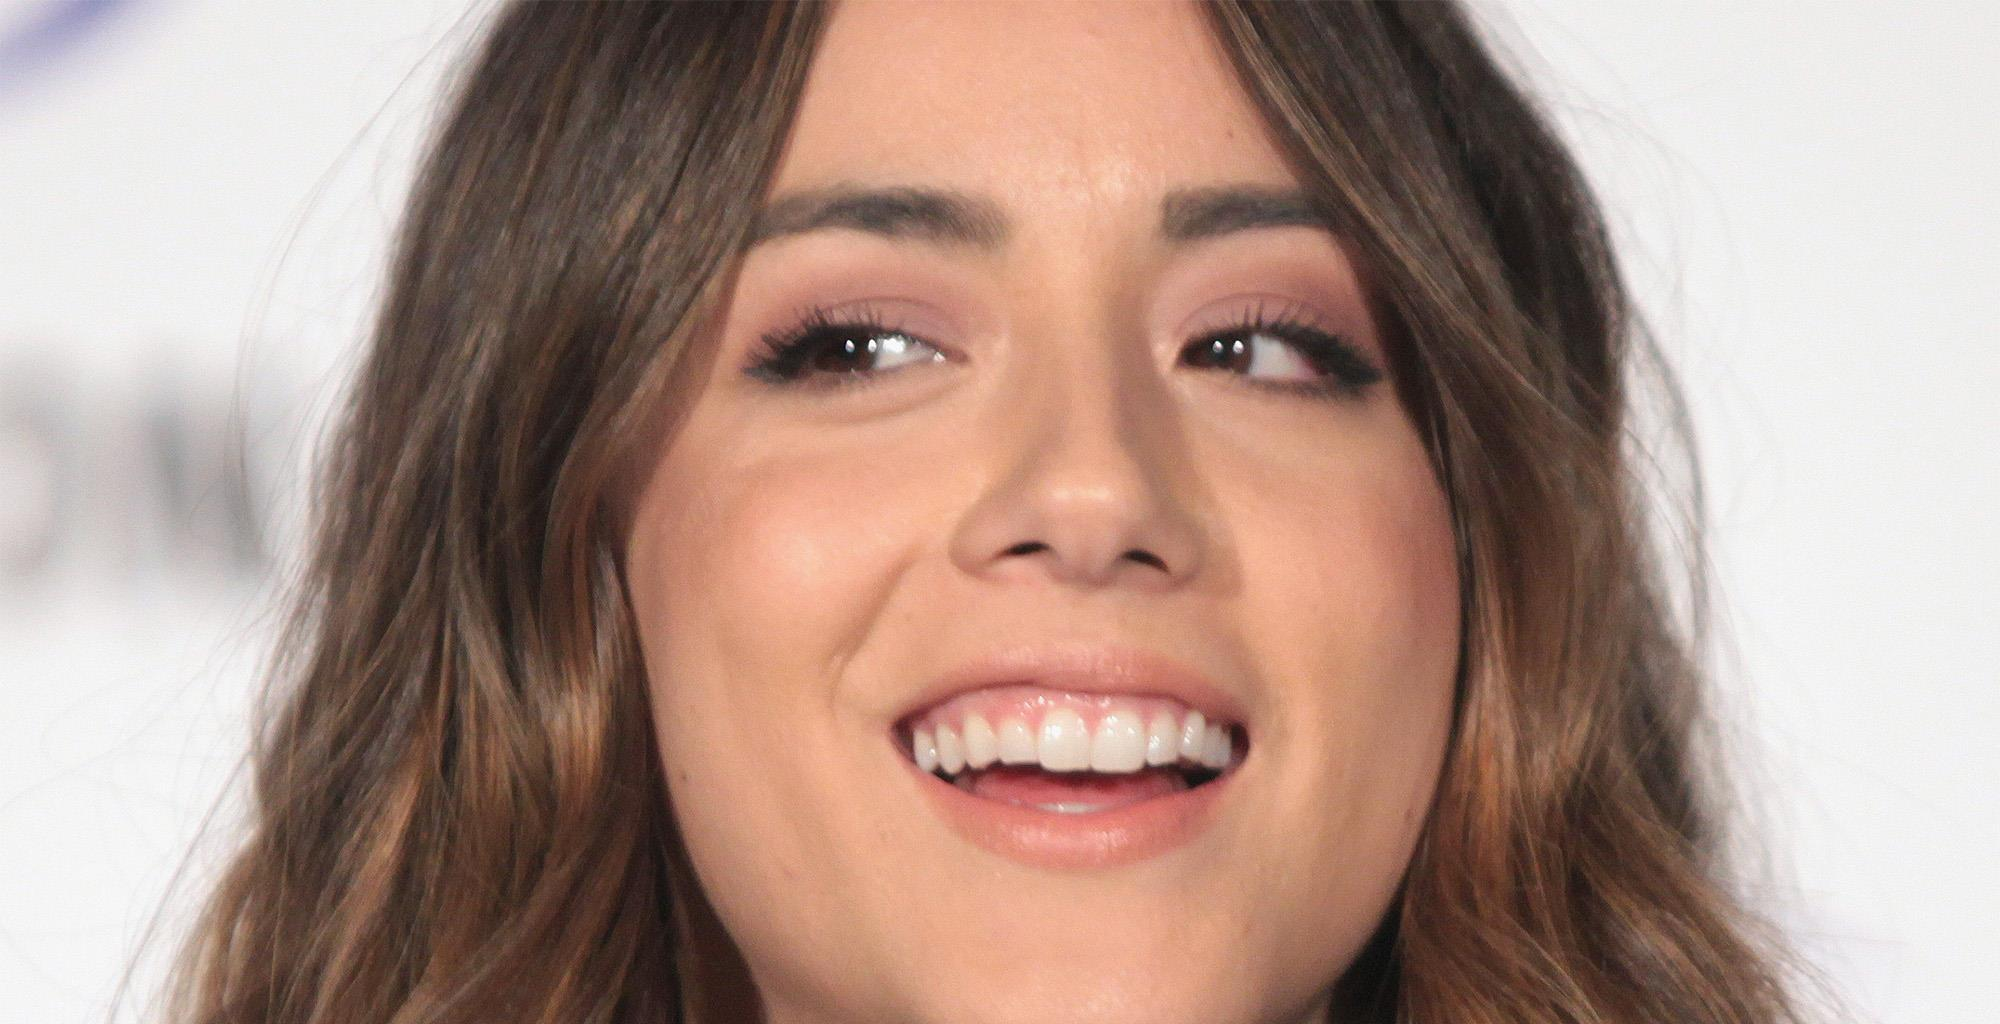 Chloe Bennet Slams 'Disgusting' Donald Trump For Calling COVID-19 The 'Chinese Virus' In Lengthy Letter